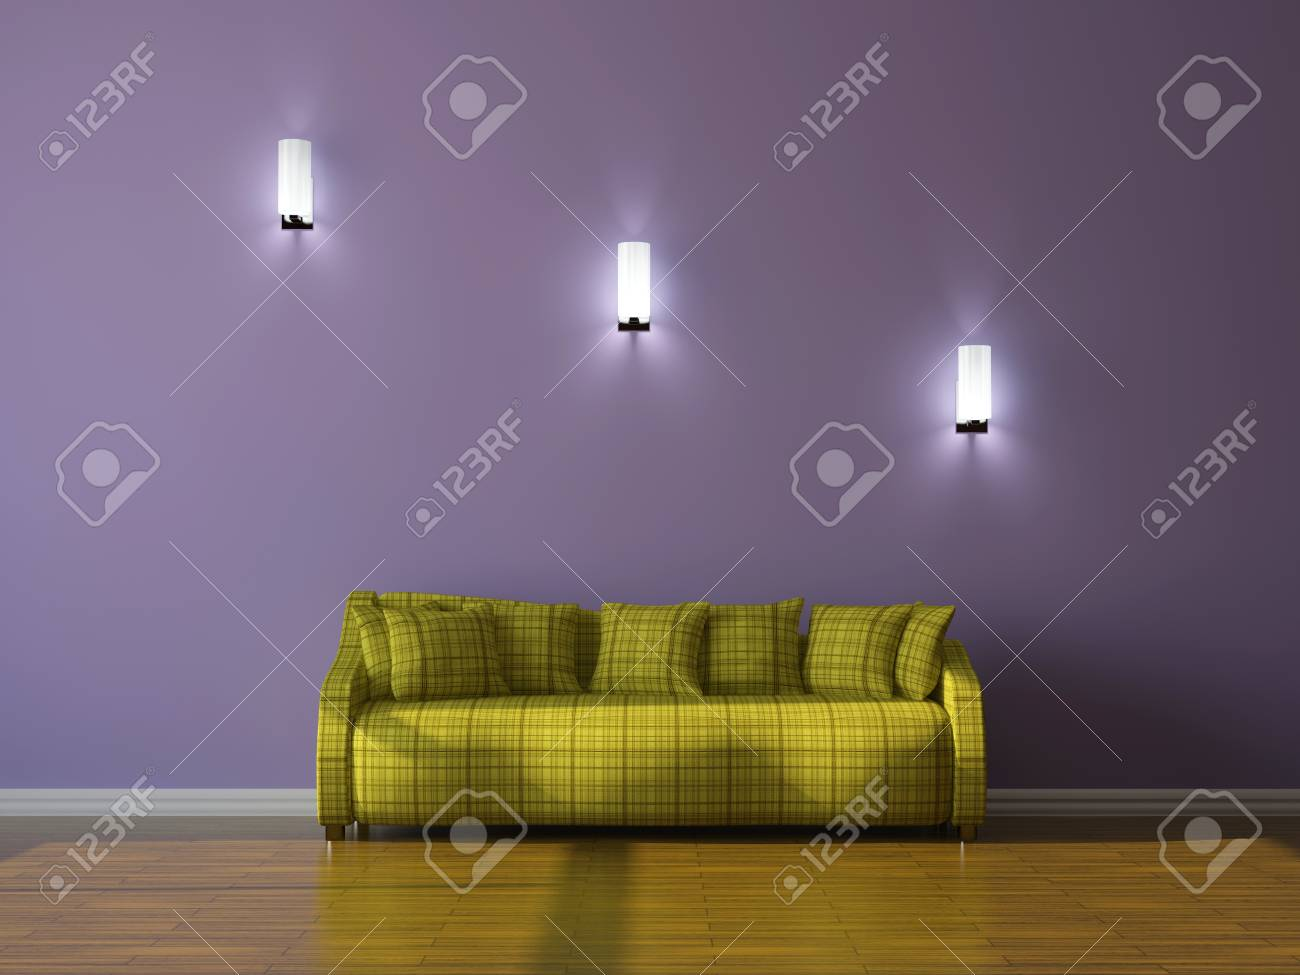 Green sofa with pillows  near the wall Stock Photo - 15523279